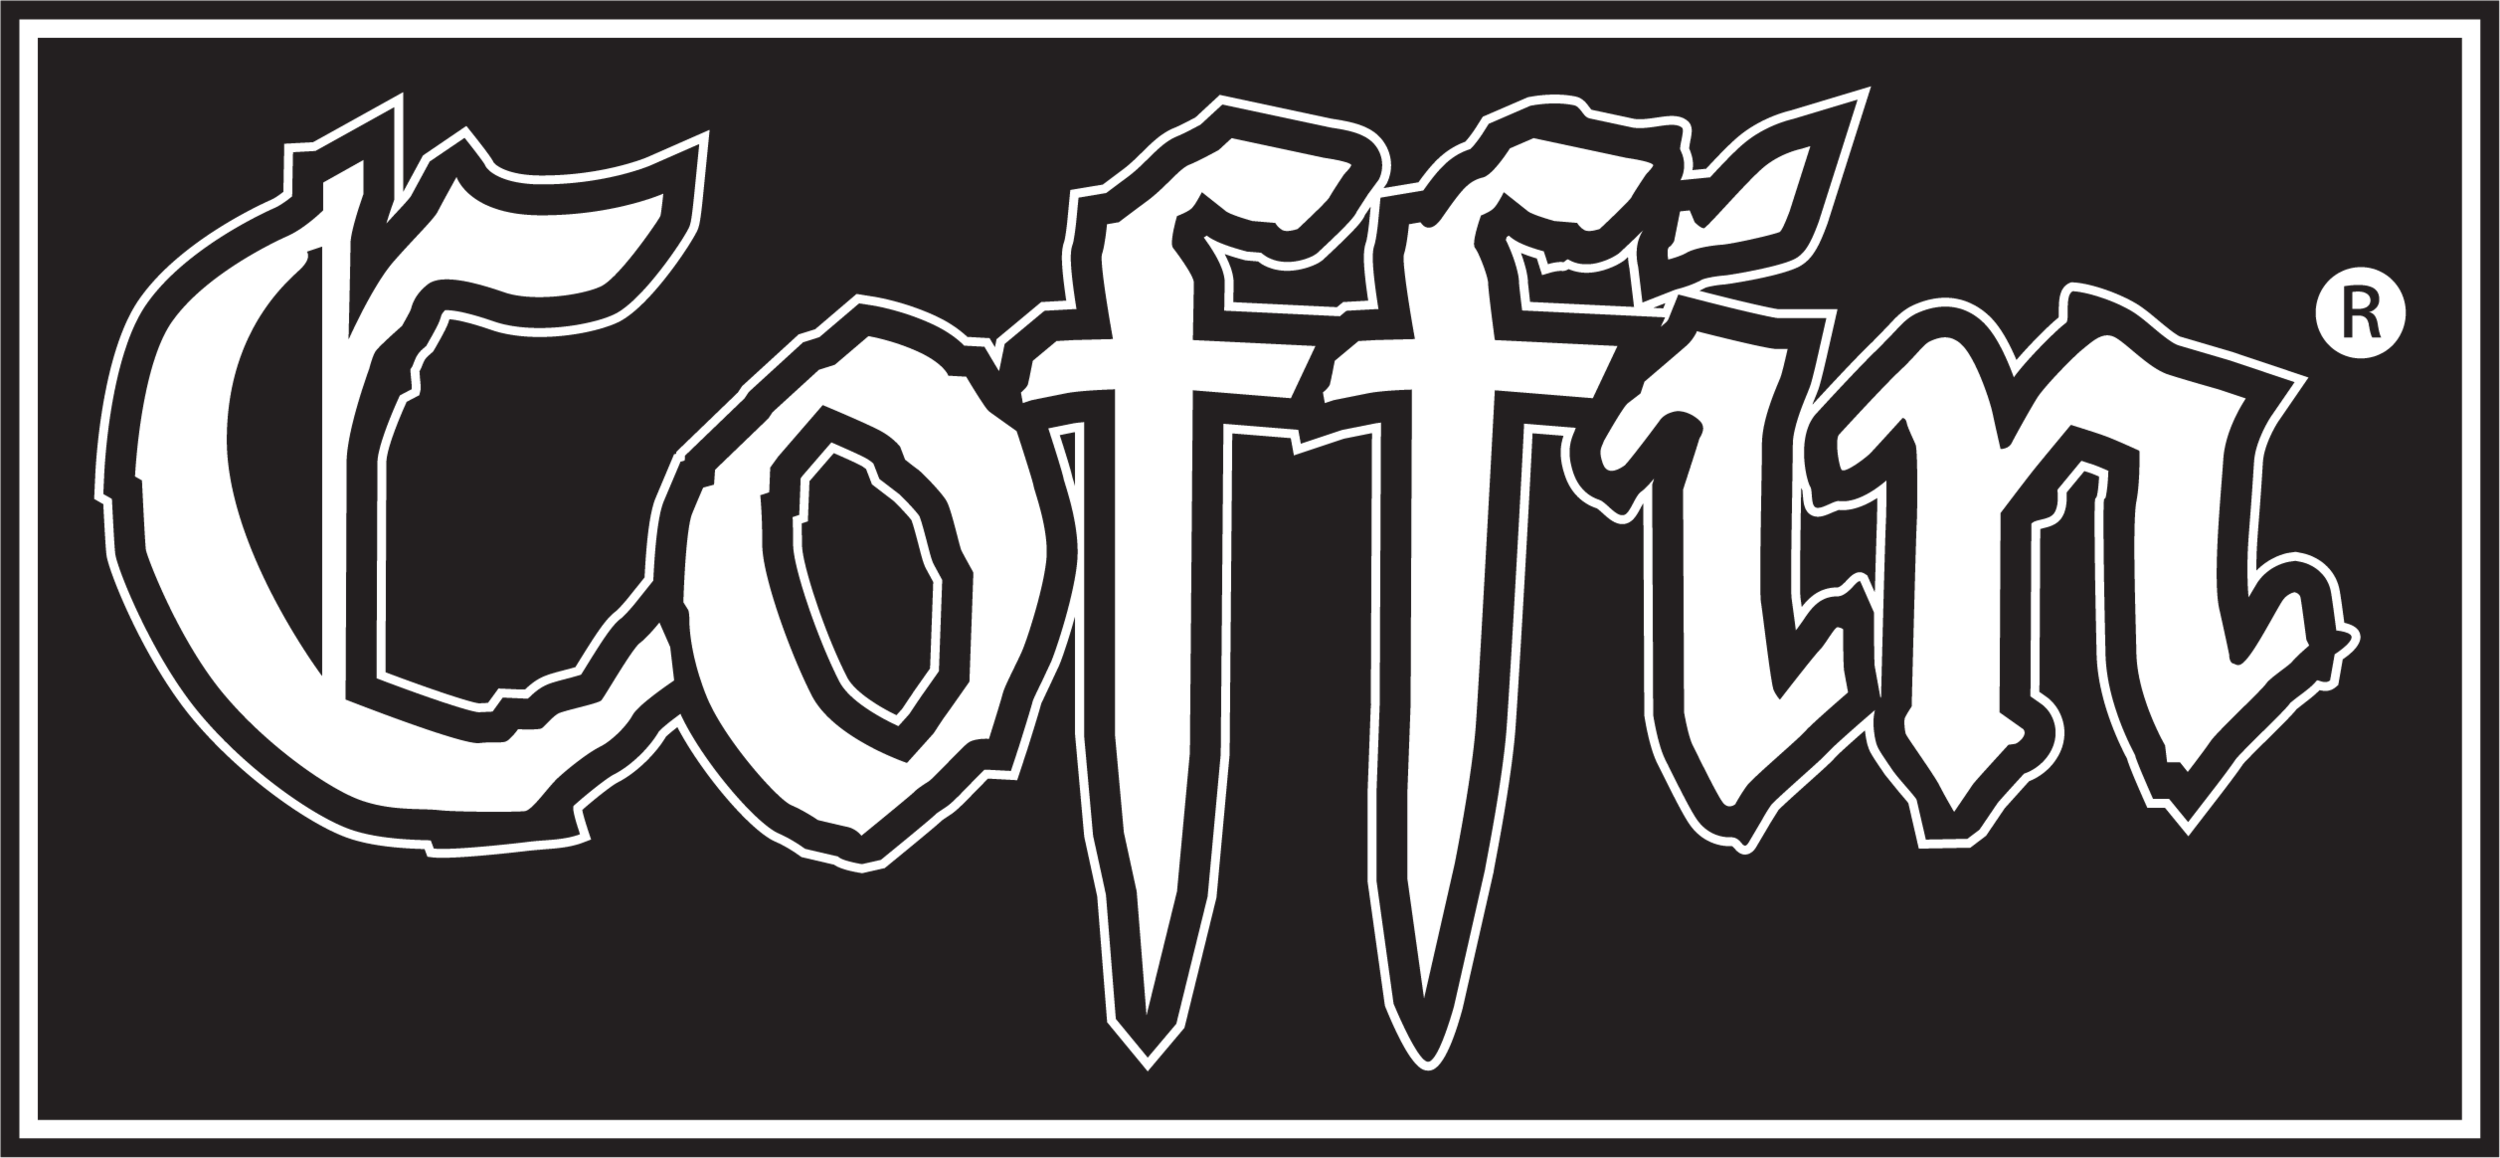 Coffin_logo_stickers_0118.png